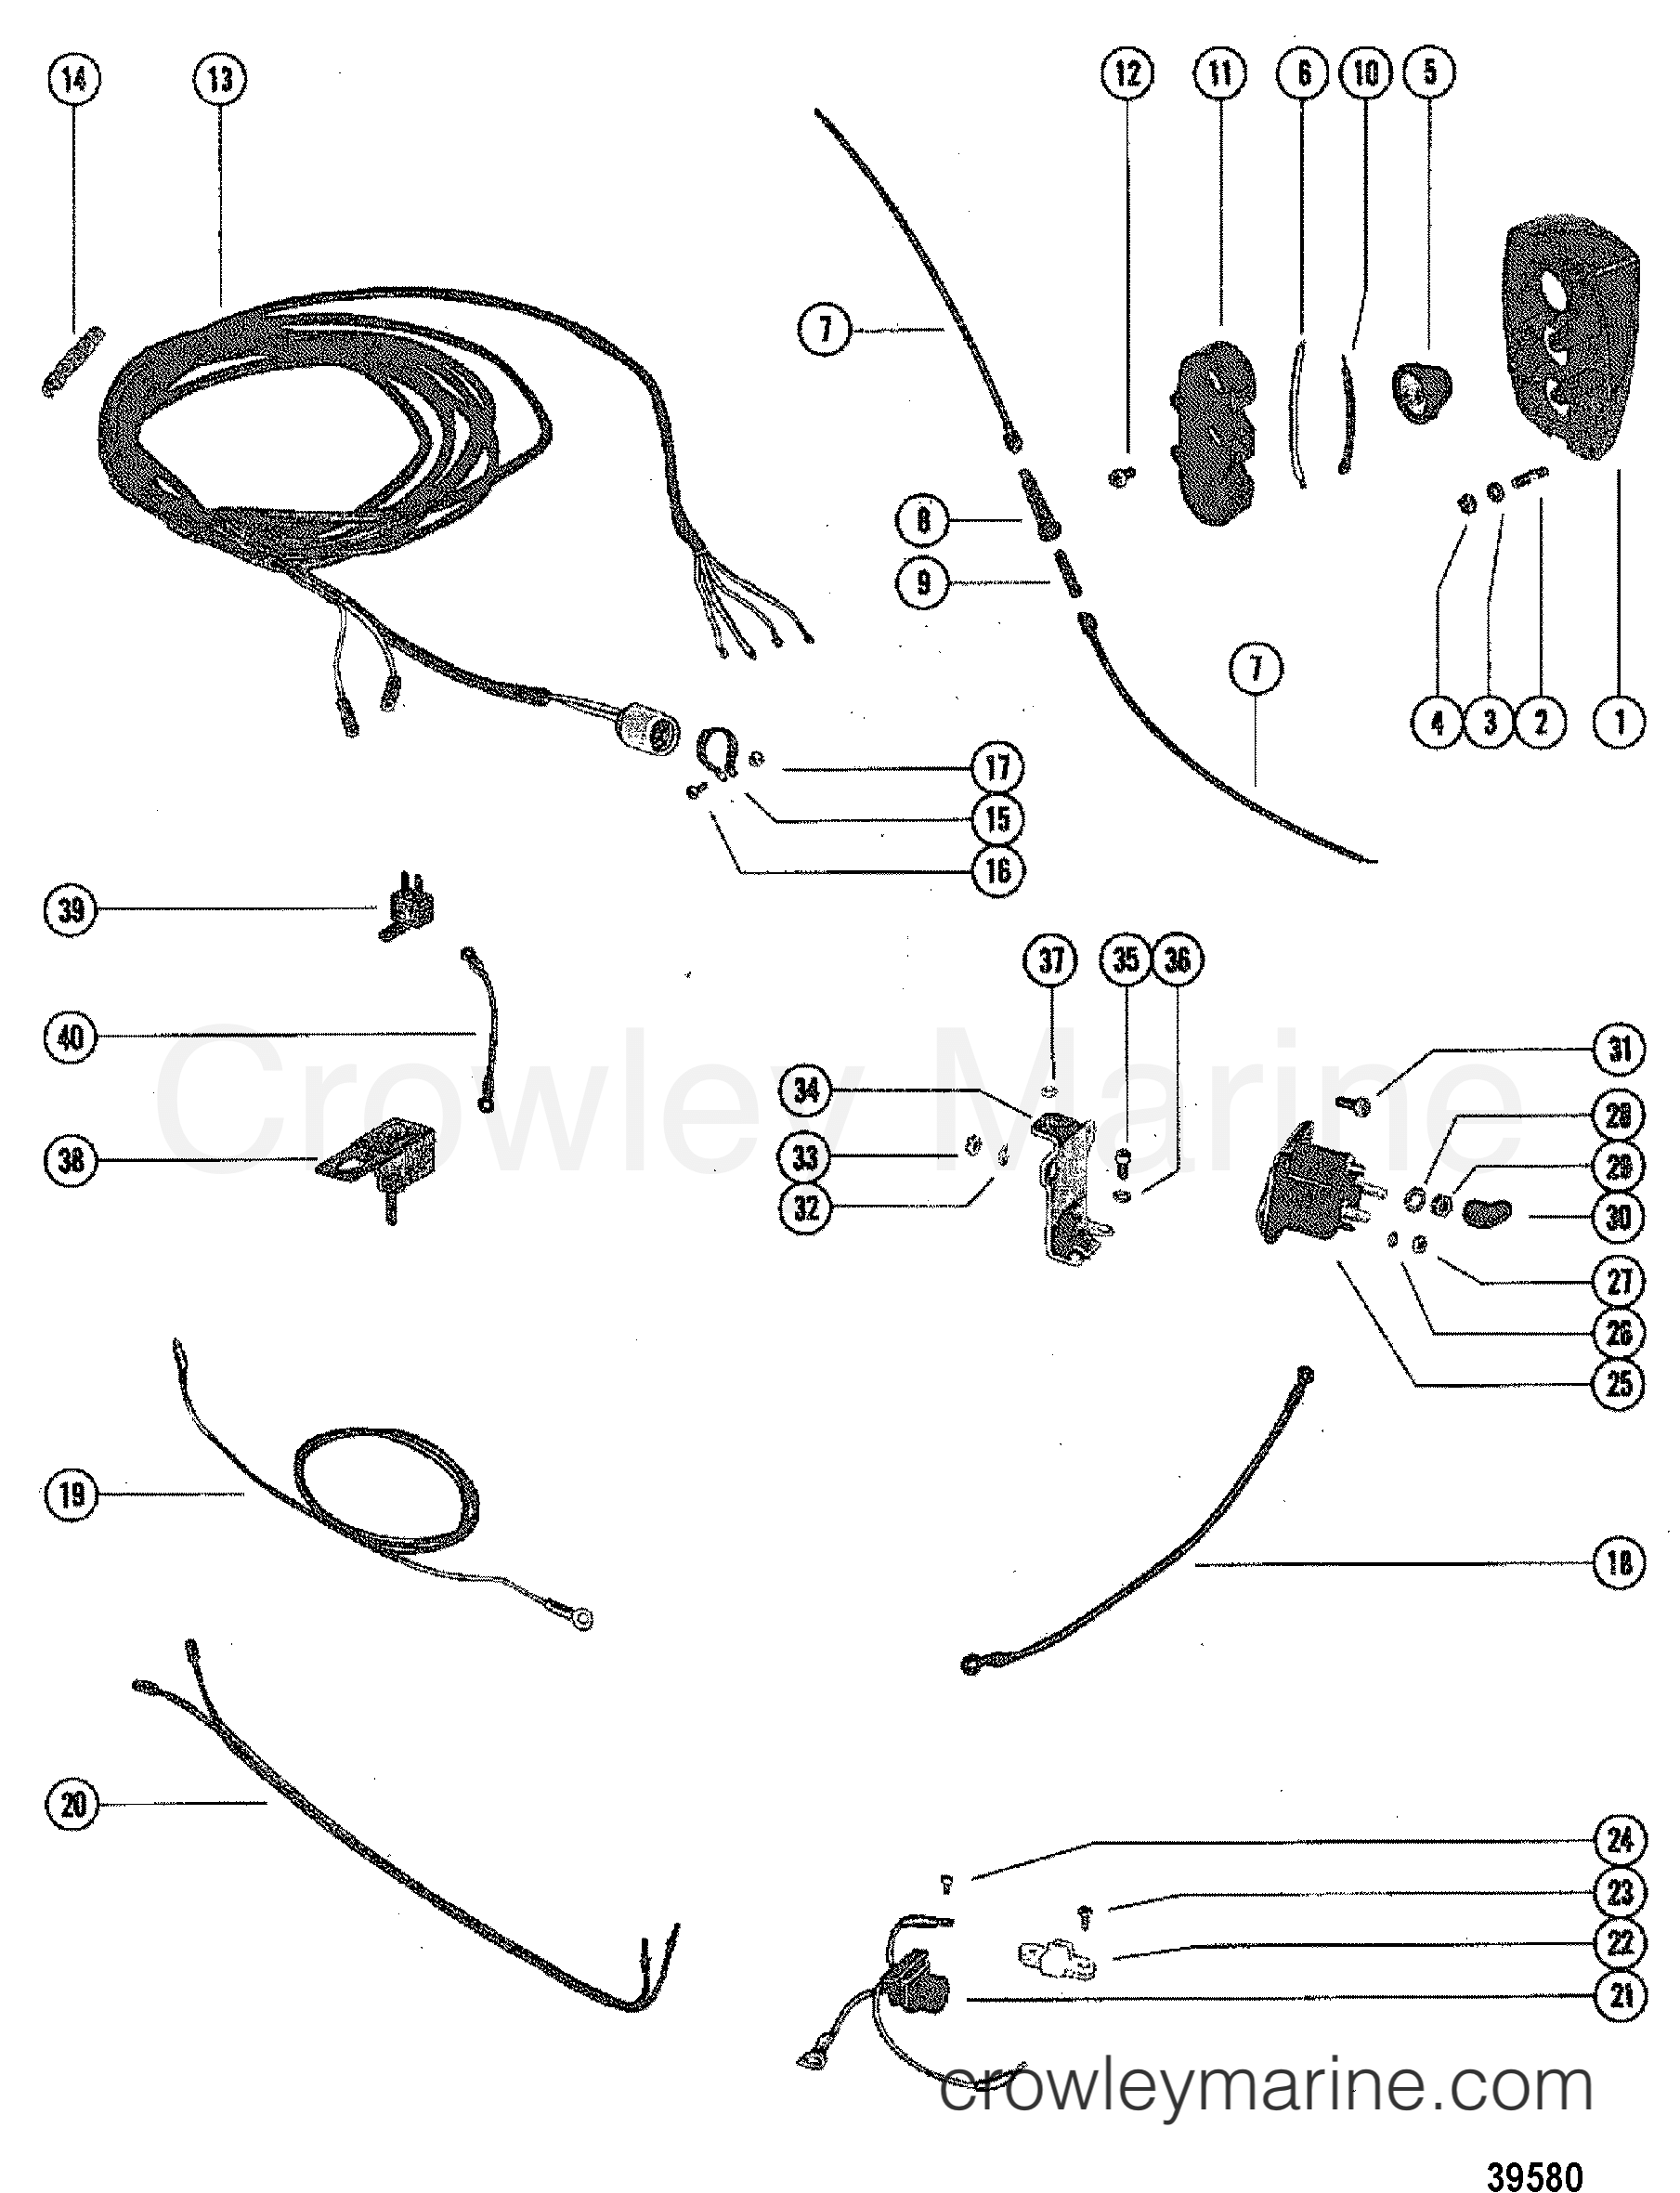 Mercruiser 120 Controls Parts Diagram Reinvent Your Wiring 1978 Control Panel Assembly 2120208 Crowley Marine Rh Crowleymarine Com Outdrive Specs